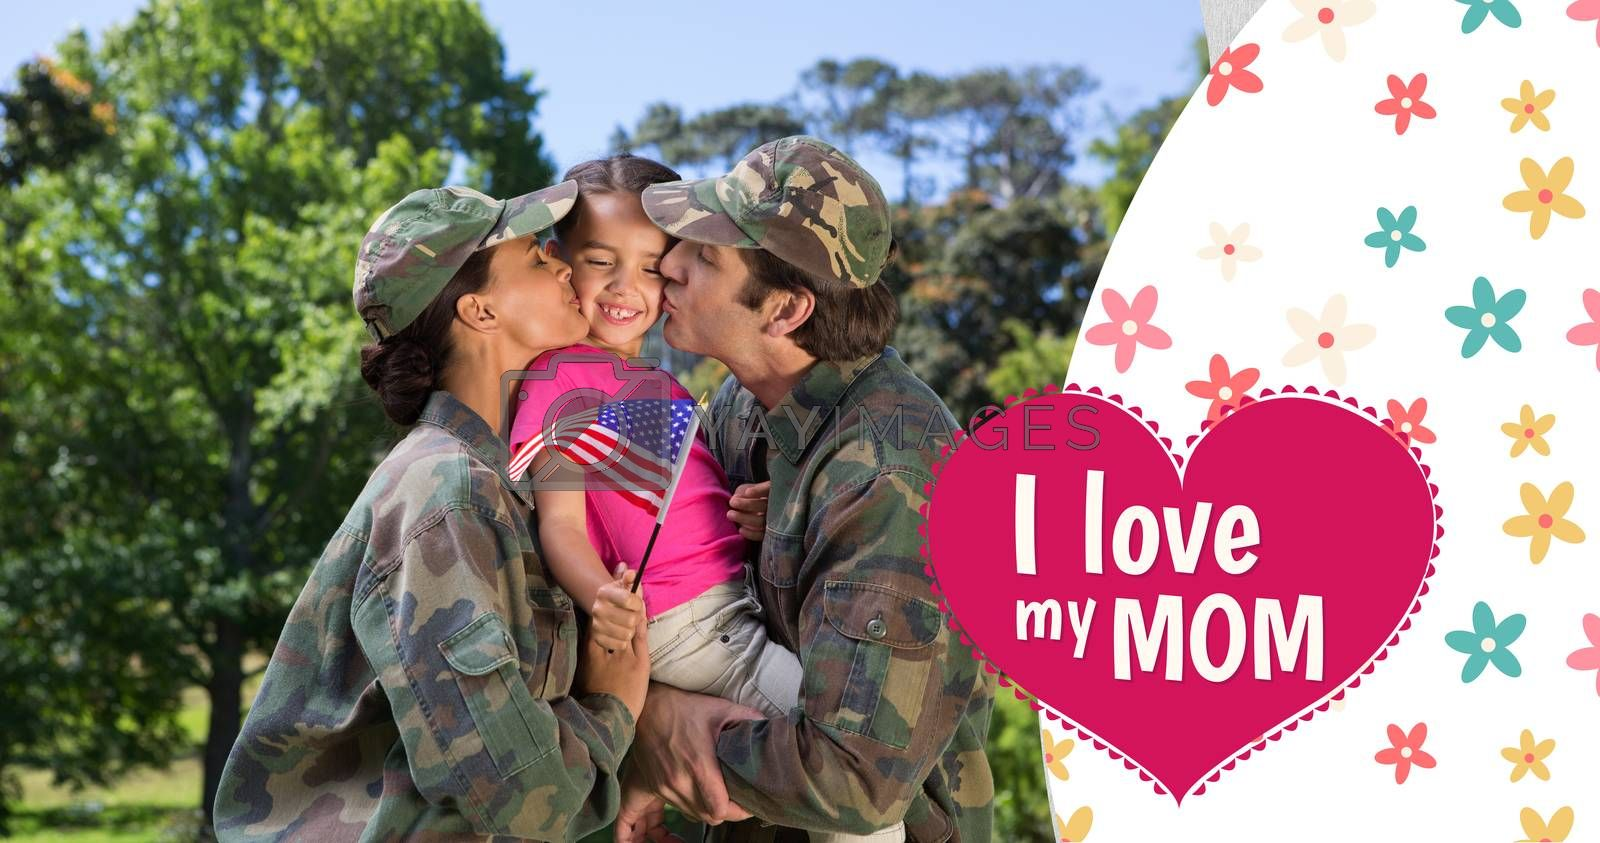 Army couple kissing daughter against mothers day greeting